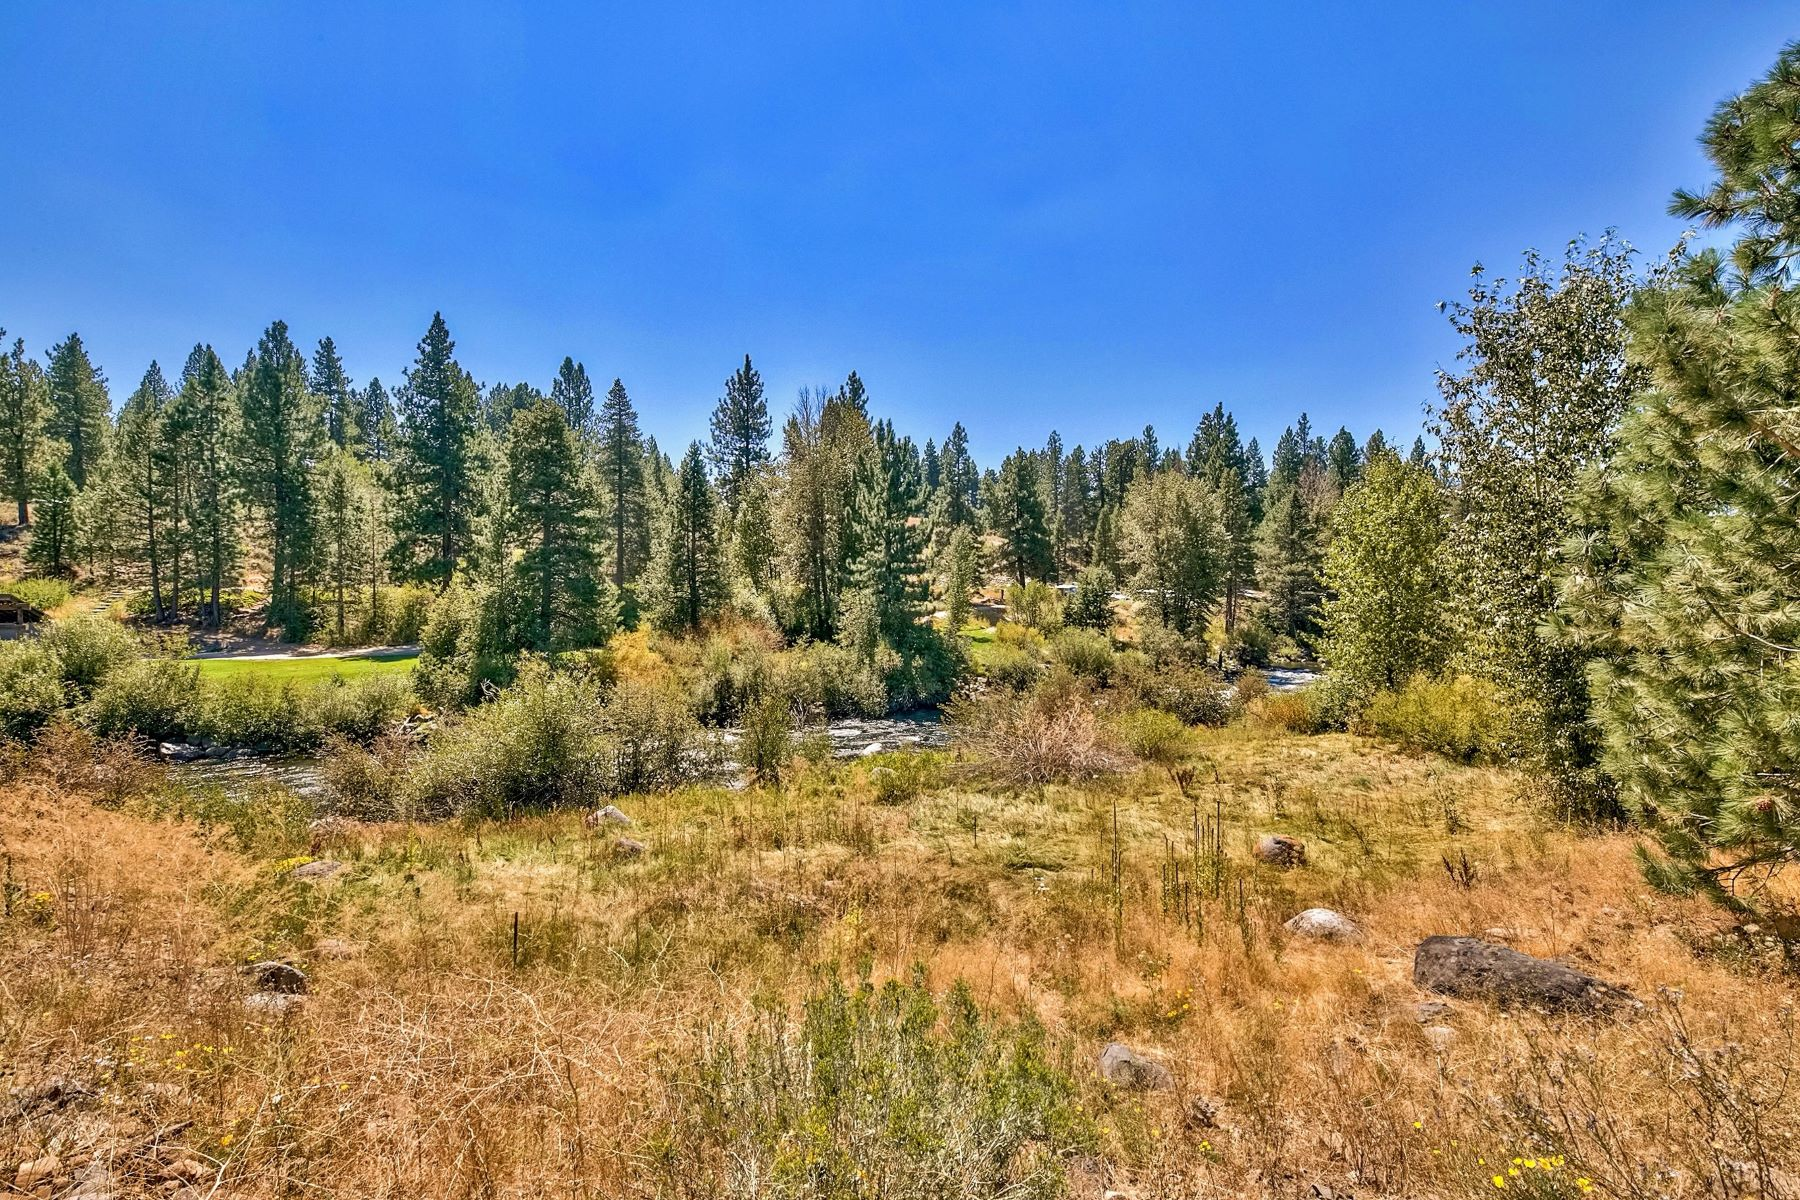 Additional photo for property listing at 10477 & 10531 East River Street Truckee California 96161 10497 & 10531 East River Street River's Edge Truckee, California 96161 United States